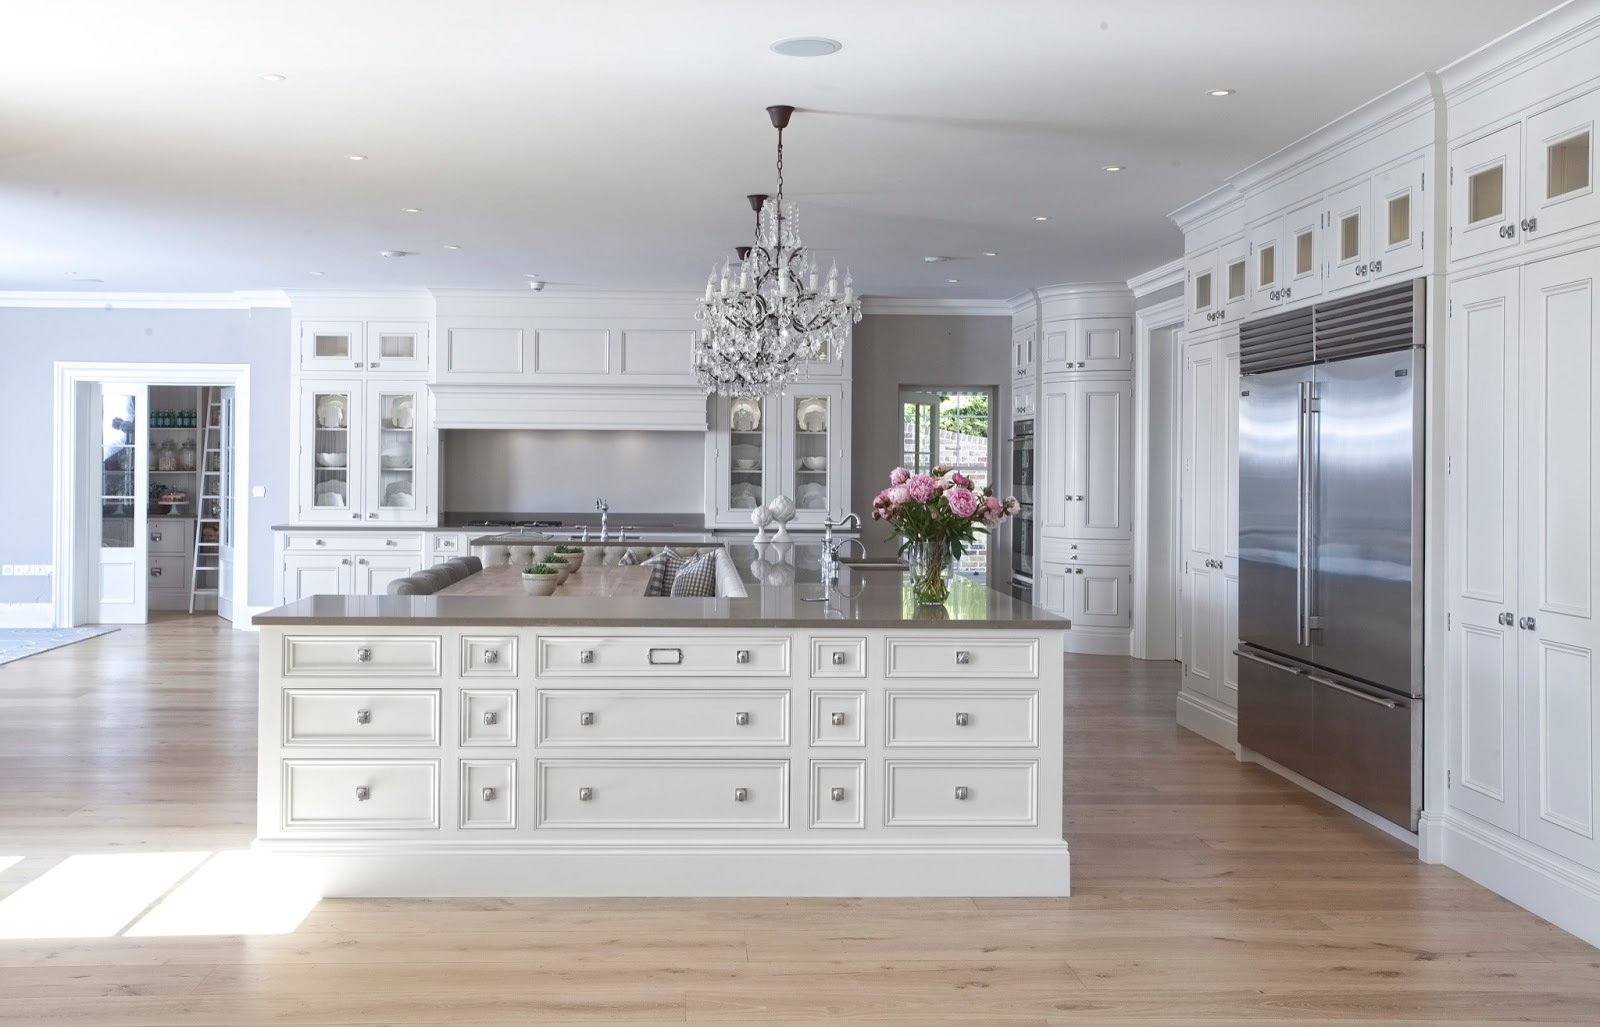 Beautiful Kitchen Islands Grommet Curtains House High End Luxury August 29 2016 Zsazsa